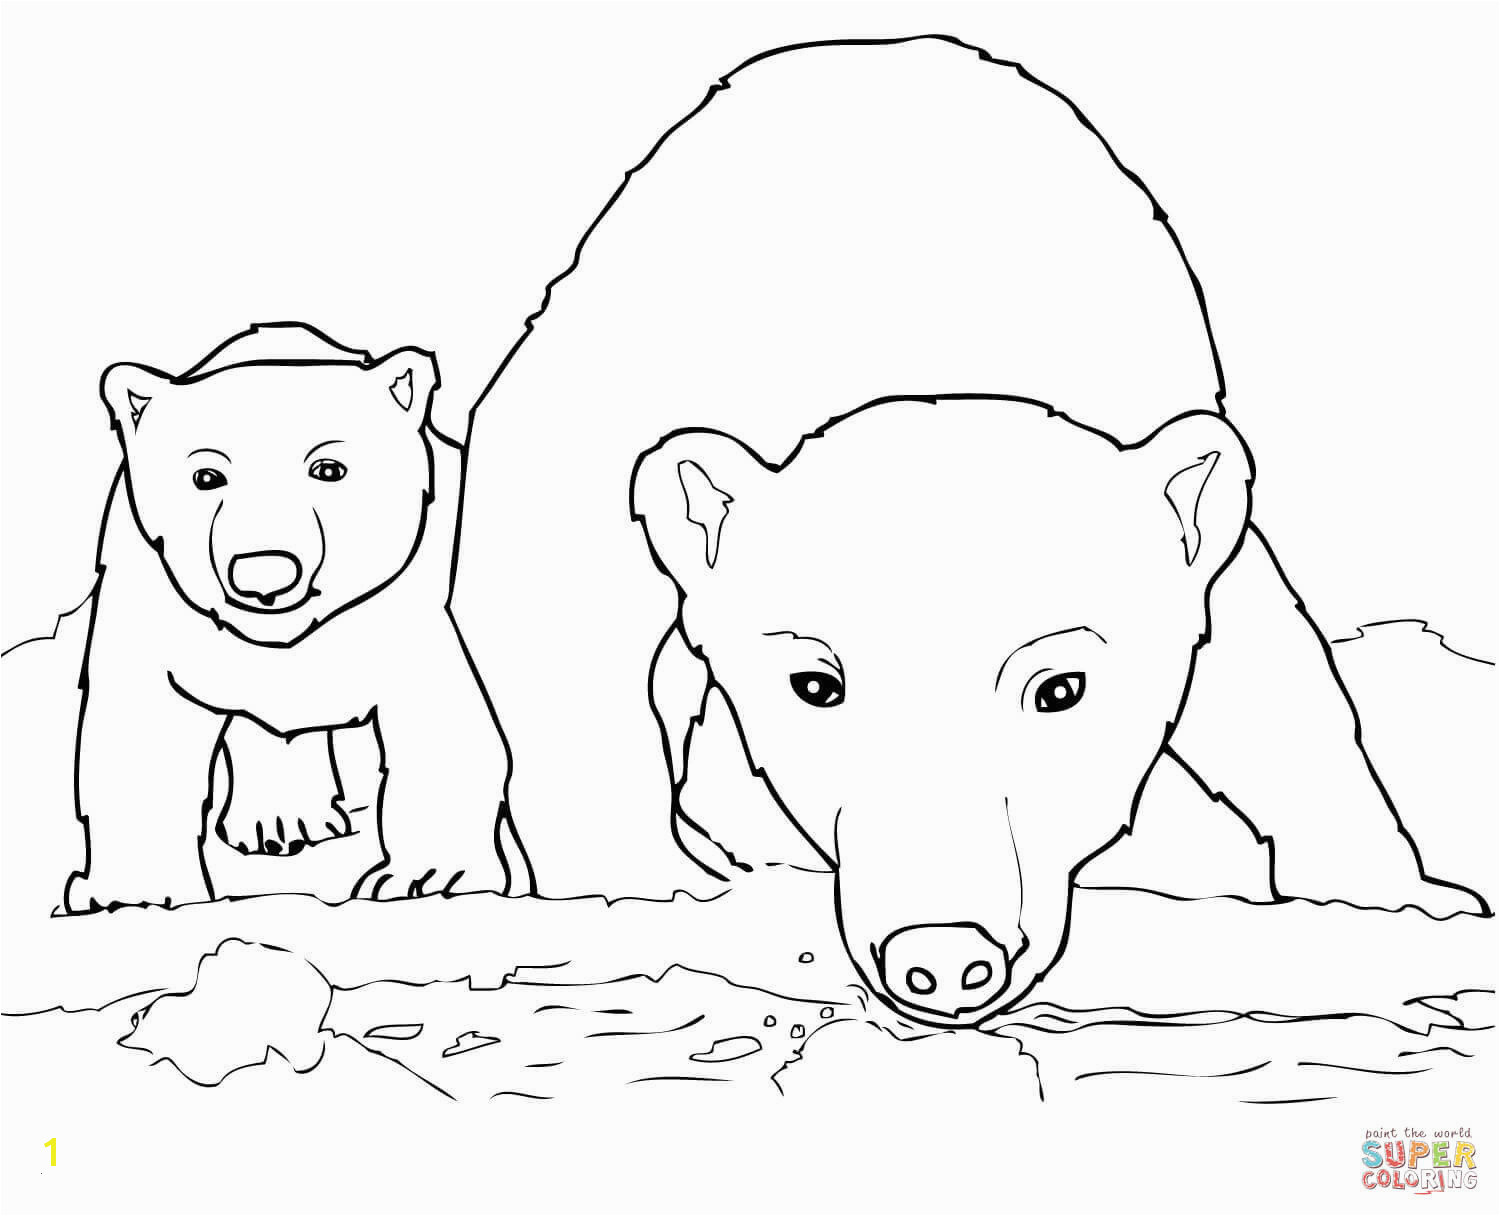 Polar Bear Coloring Pages Polar Bear Coloring Book Awesome Best Od Dog Coloring Pages Free